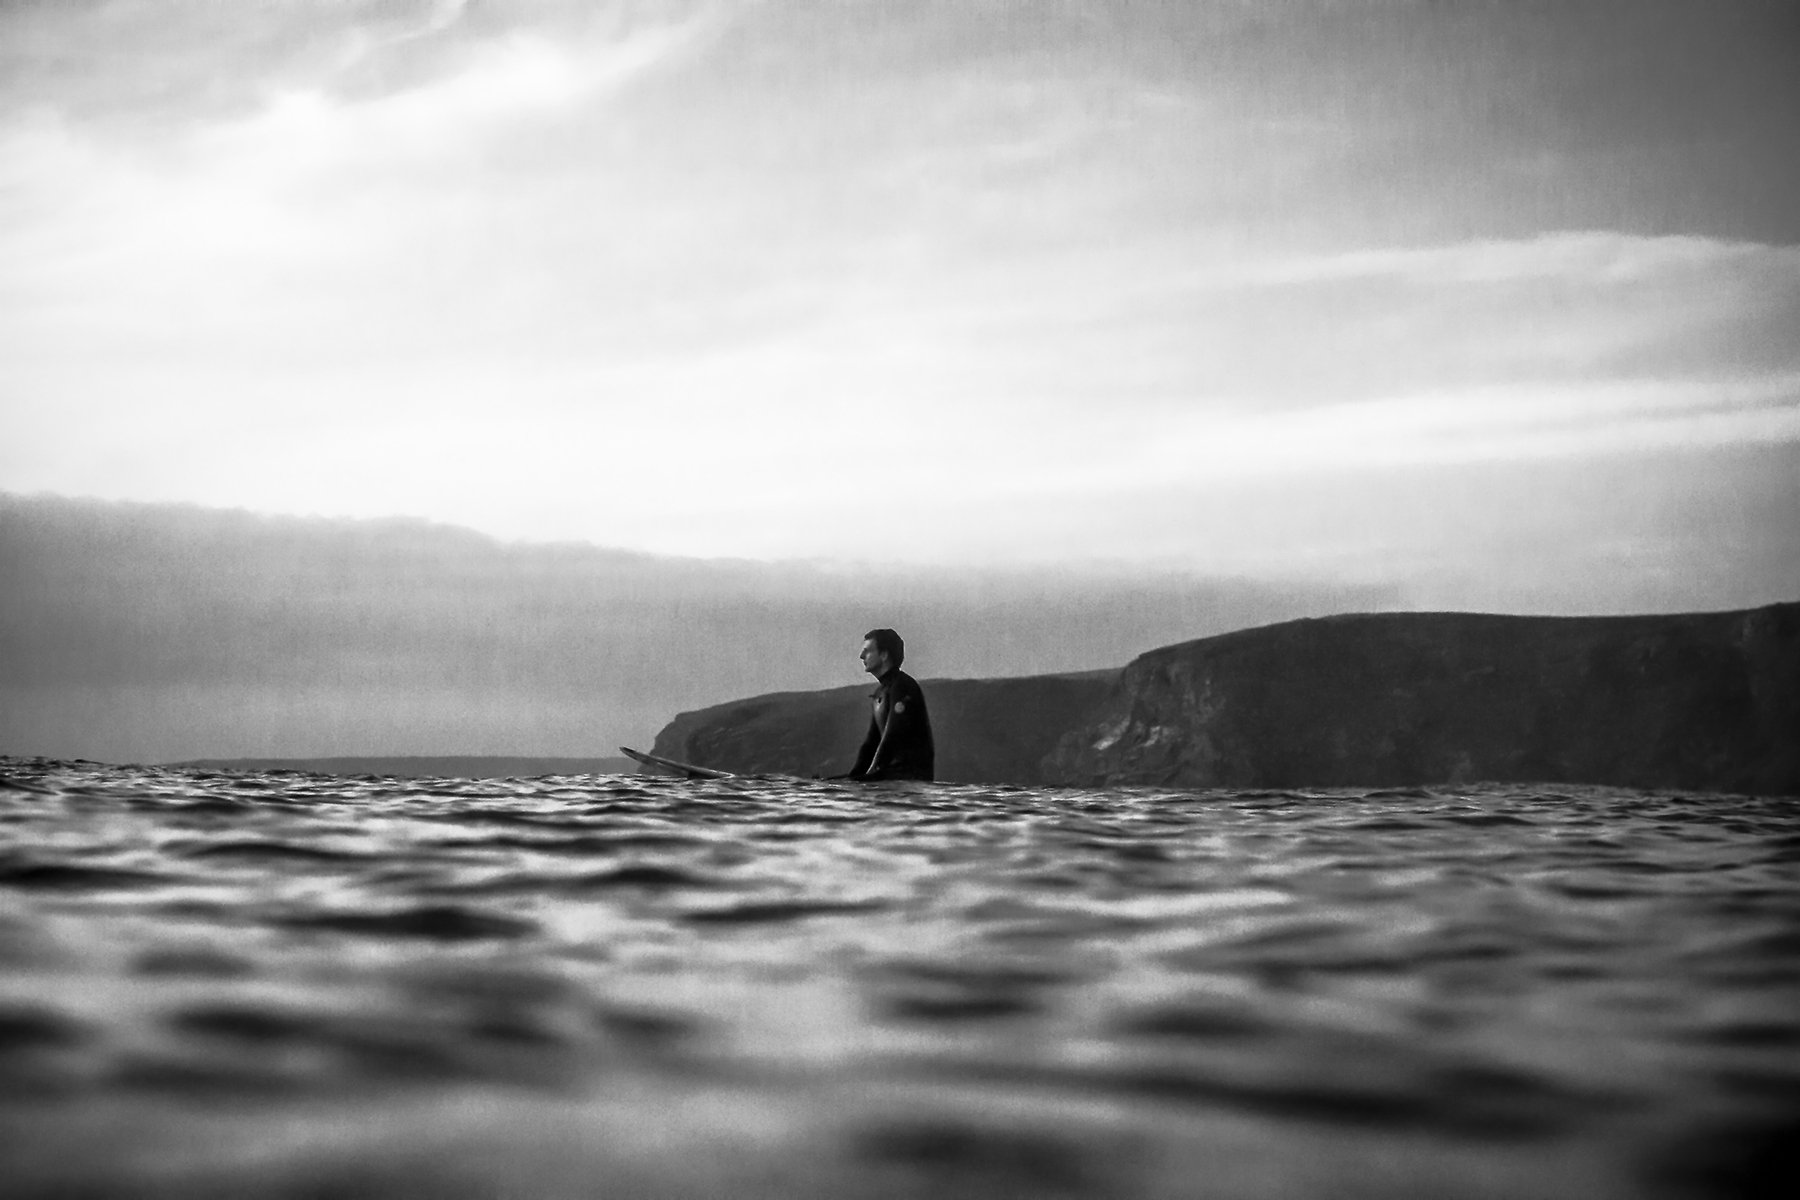 Hayley Ruthless Elizabeth Green's photo of Watergate Bay